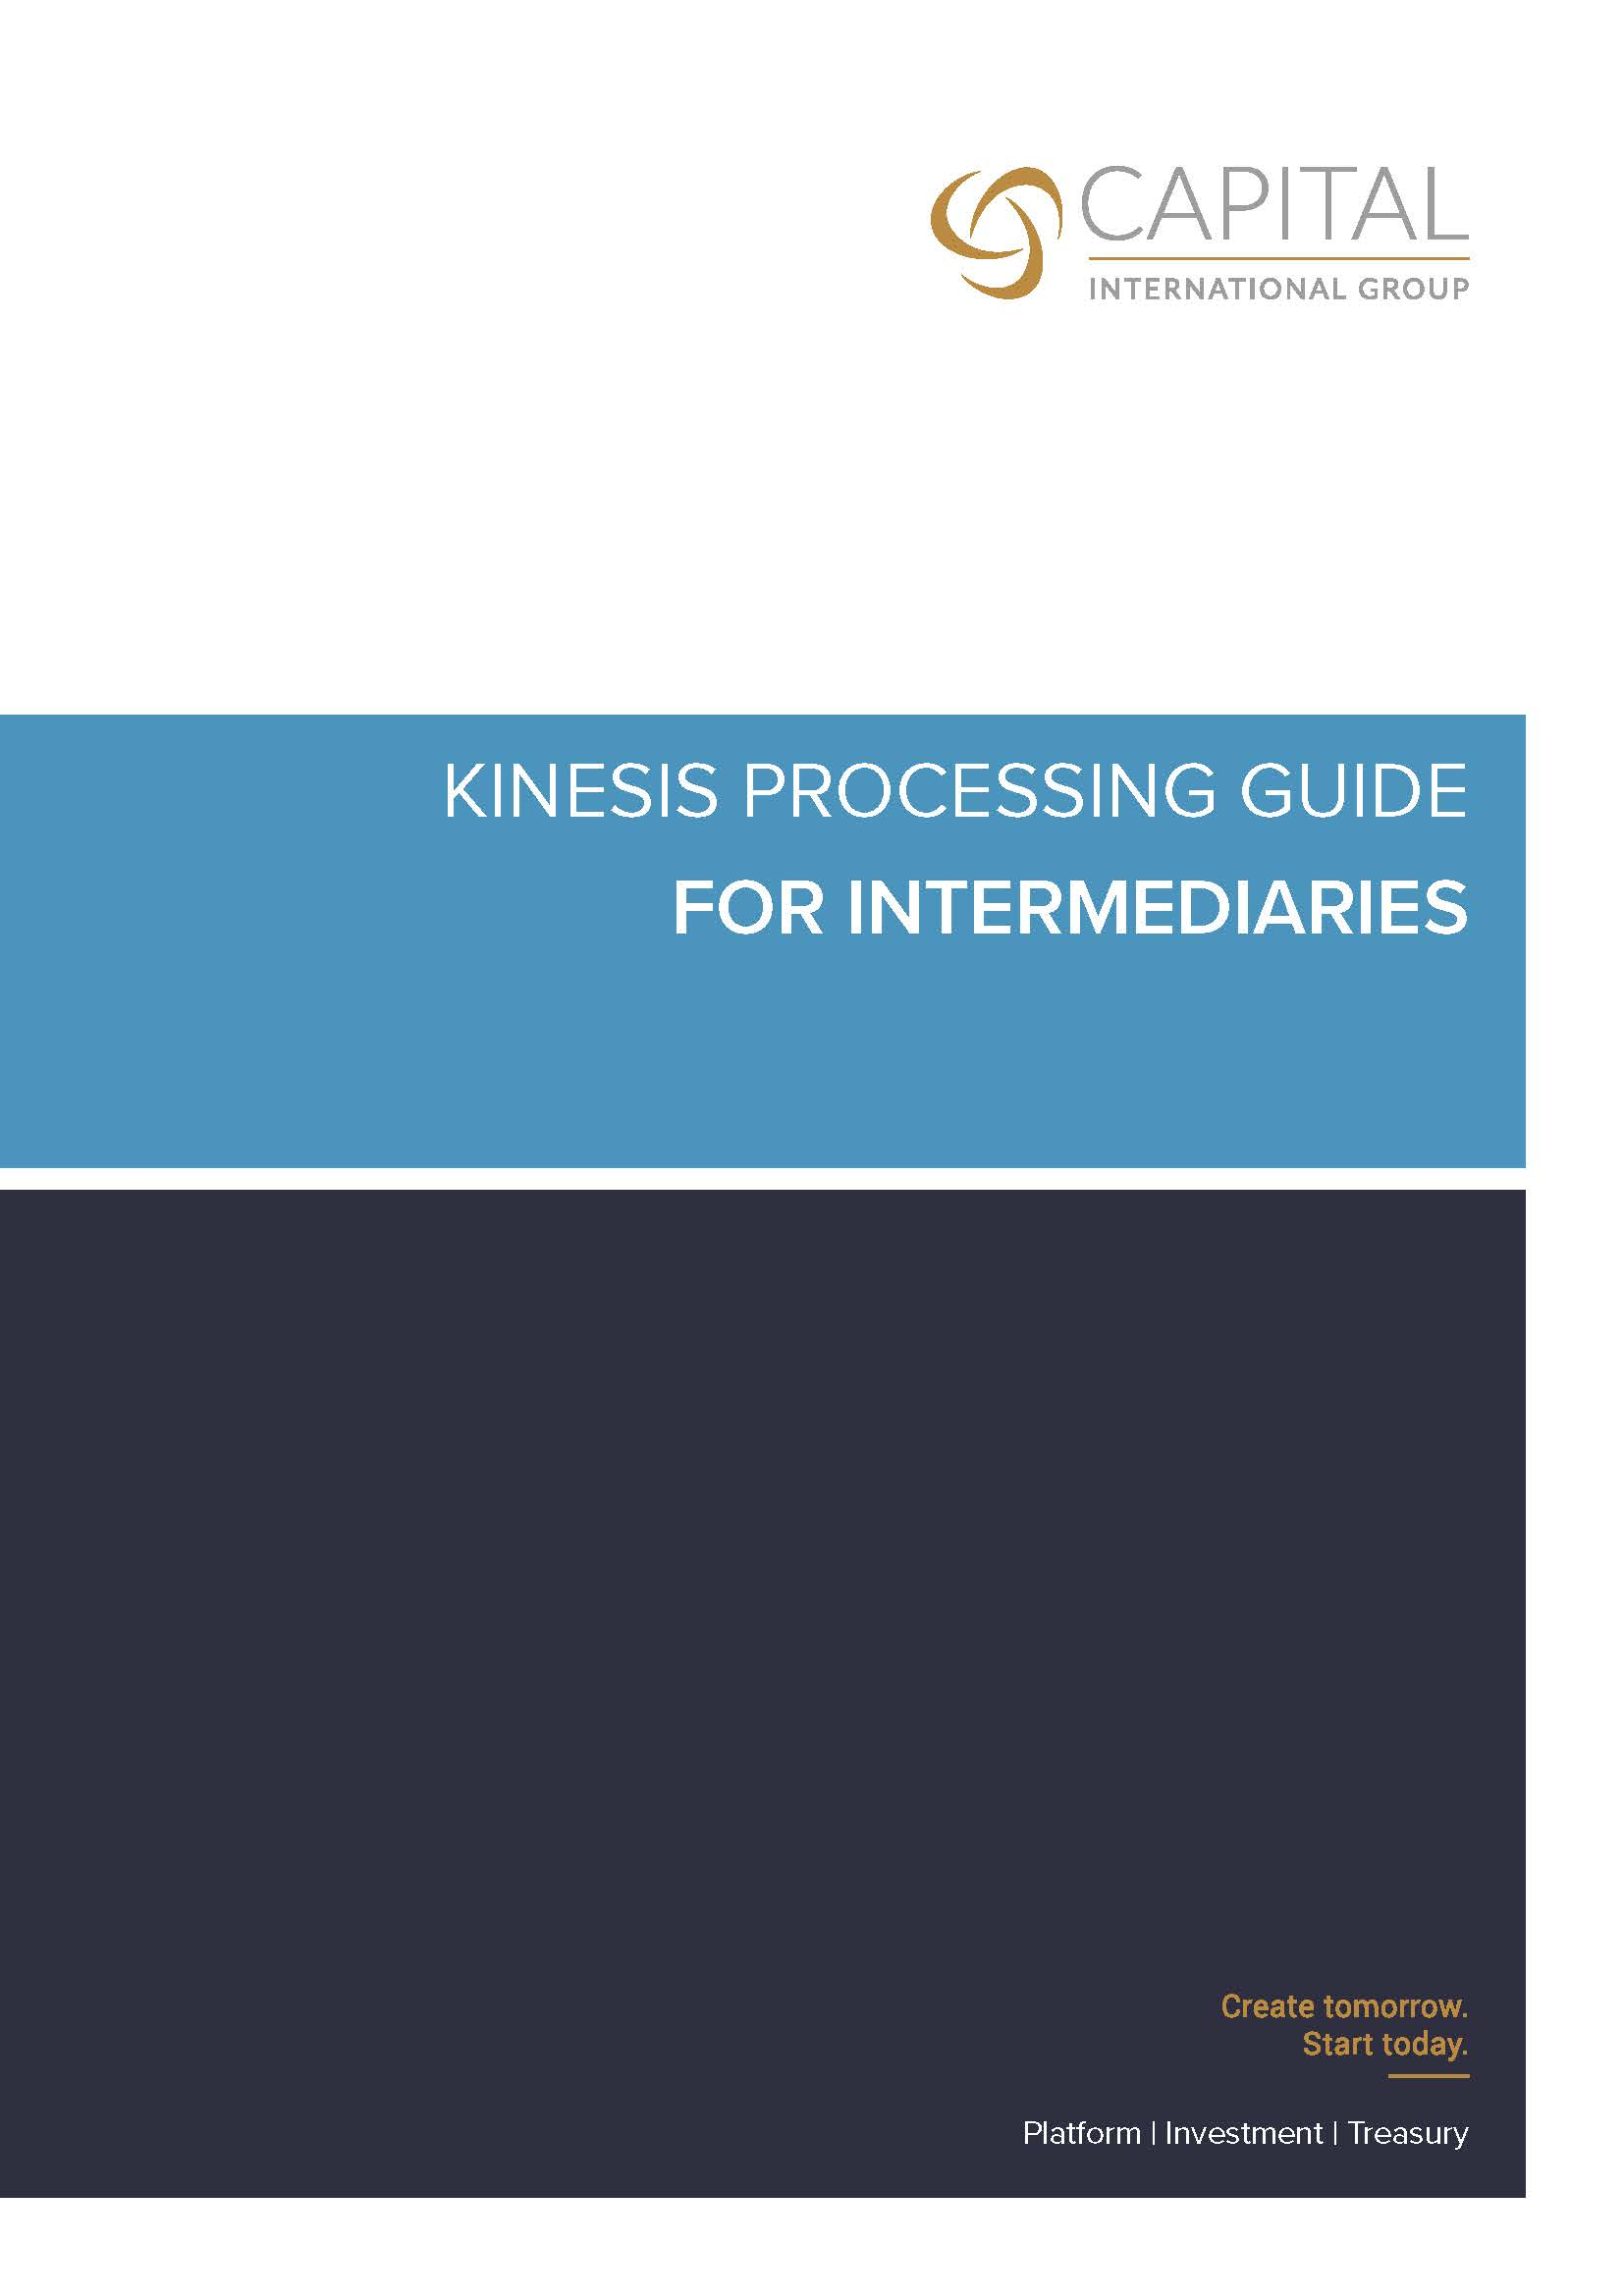 Kinesis Processing Guide for Intermediaries